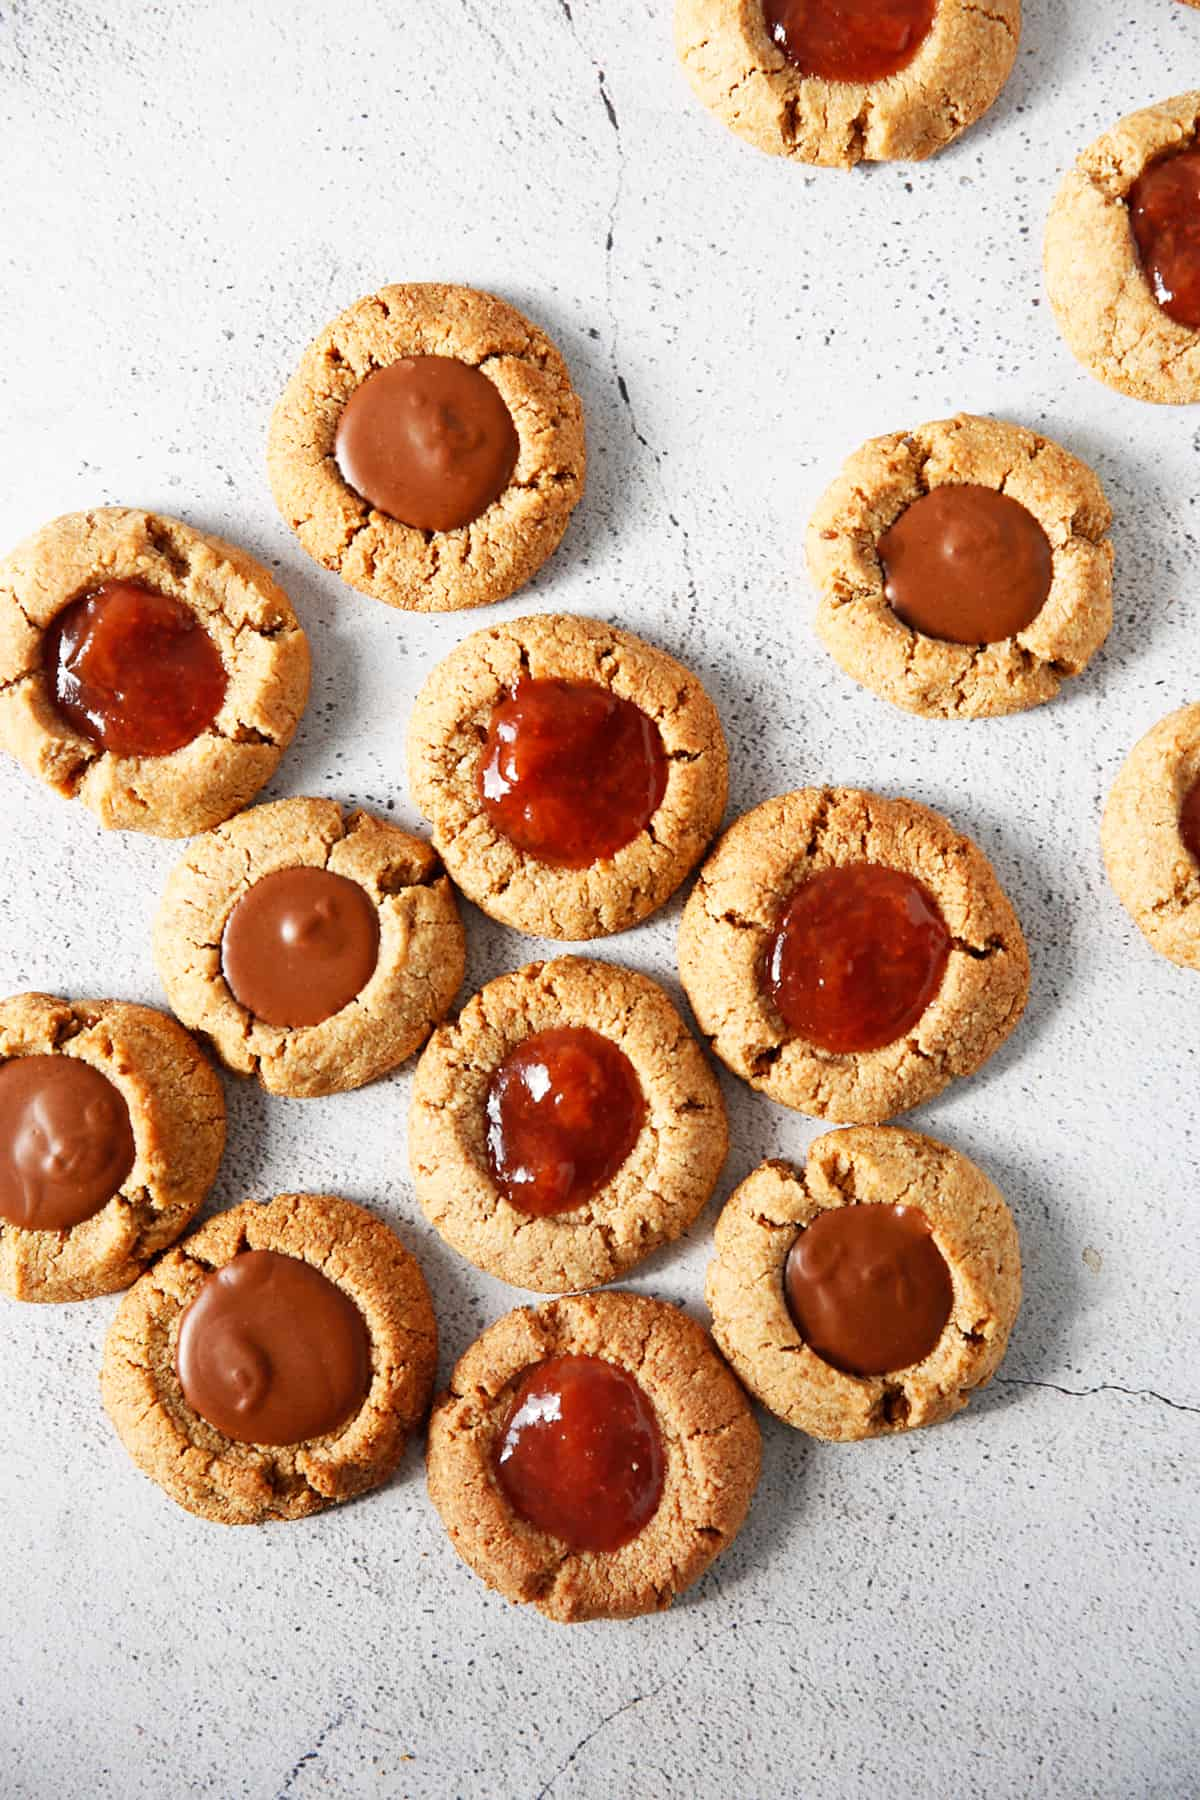 Jam thumbprint cookies.